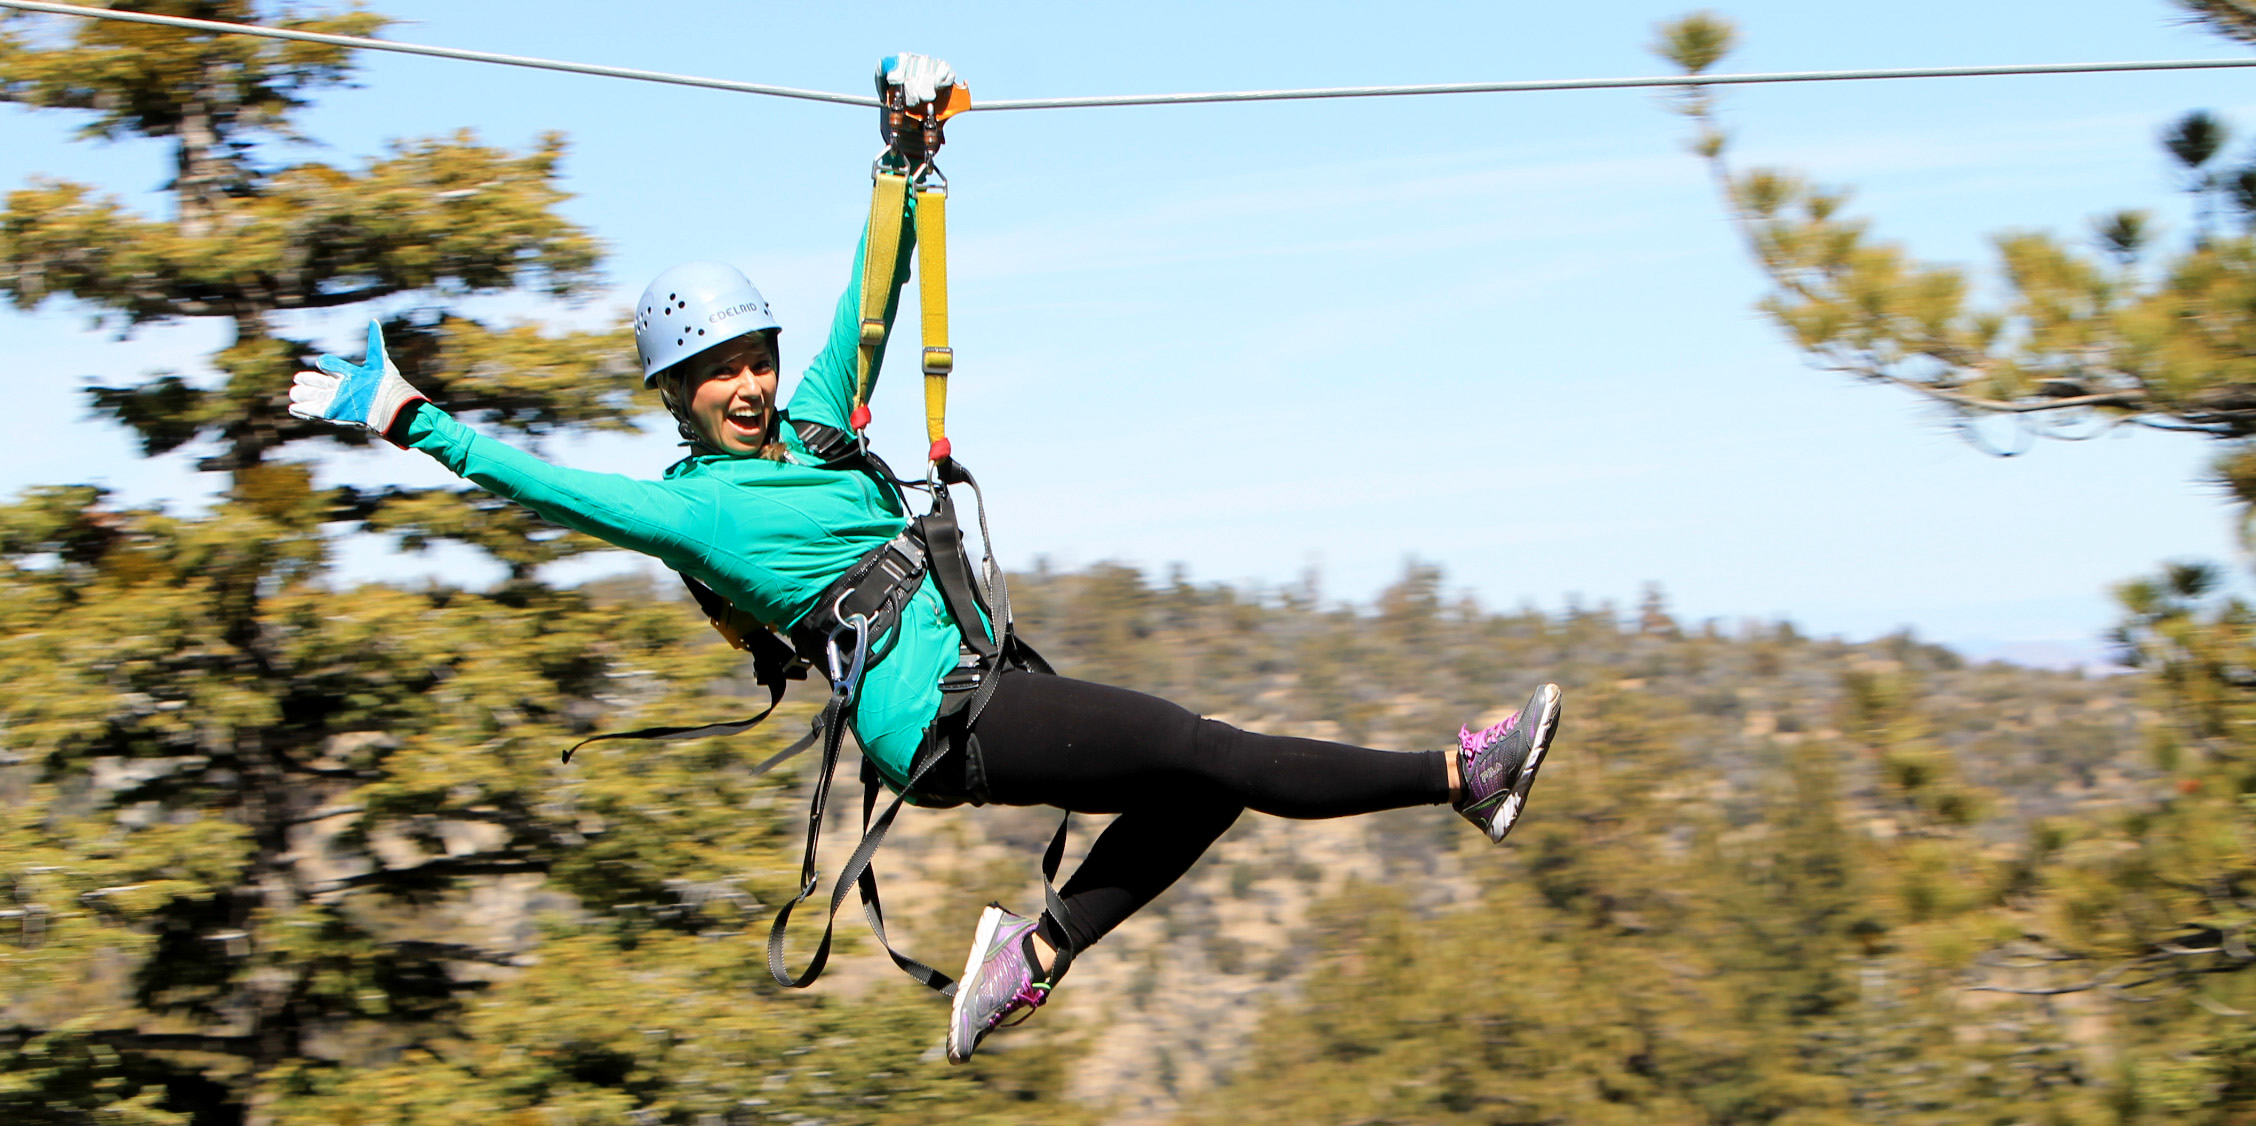 At Big Bear's Action Tours, you can zip on nine separate high-speed zip lines ranging from 140 to 860 feet long and travel through the tree tops up to 85 feet above the forest floor. Each zip is faster and longer than the previous one until you're zipping along at speeds up to 45 mph. Photo courtesy Action Tours.